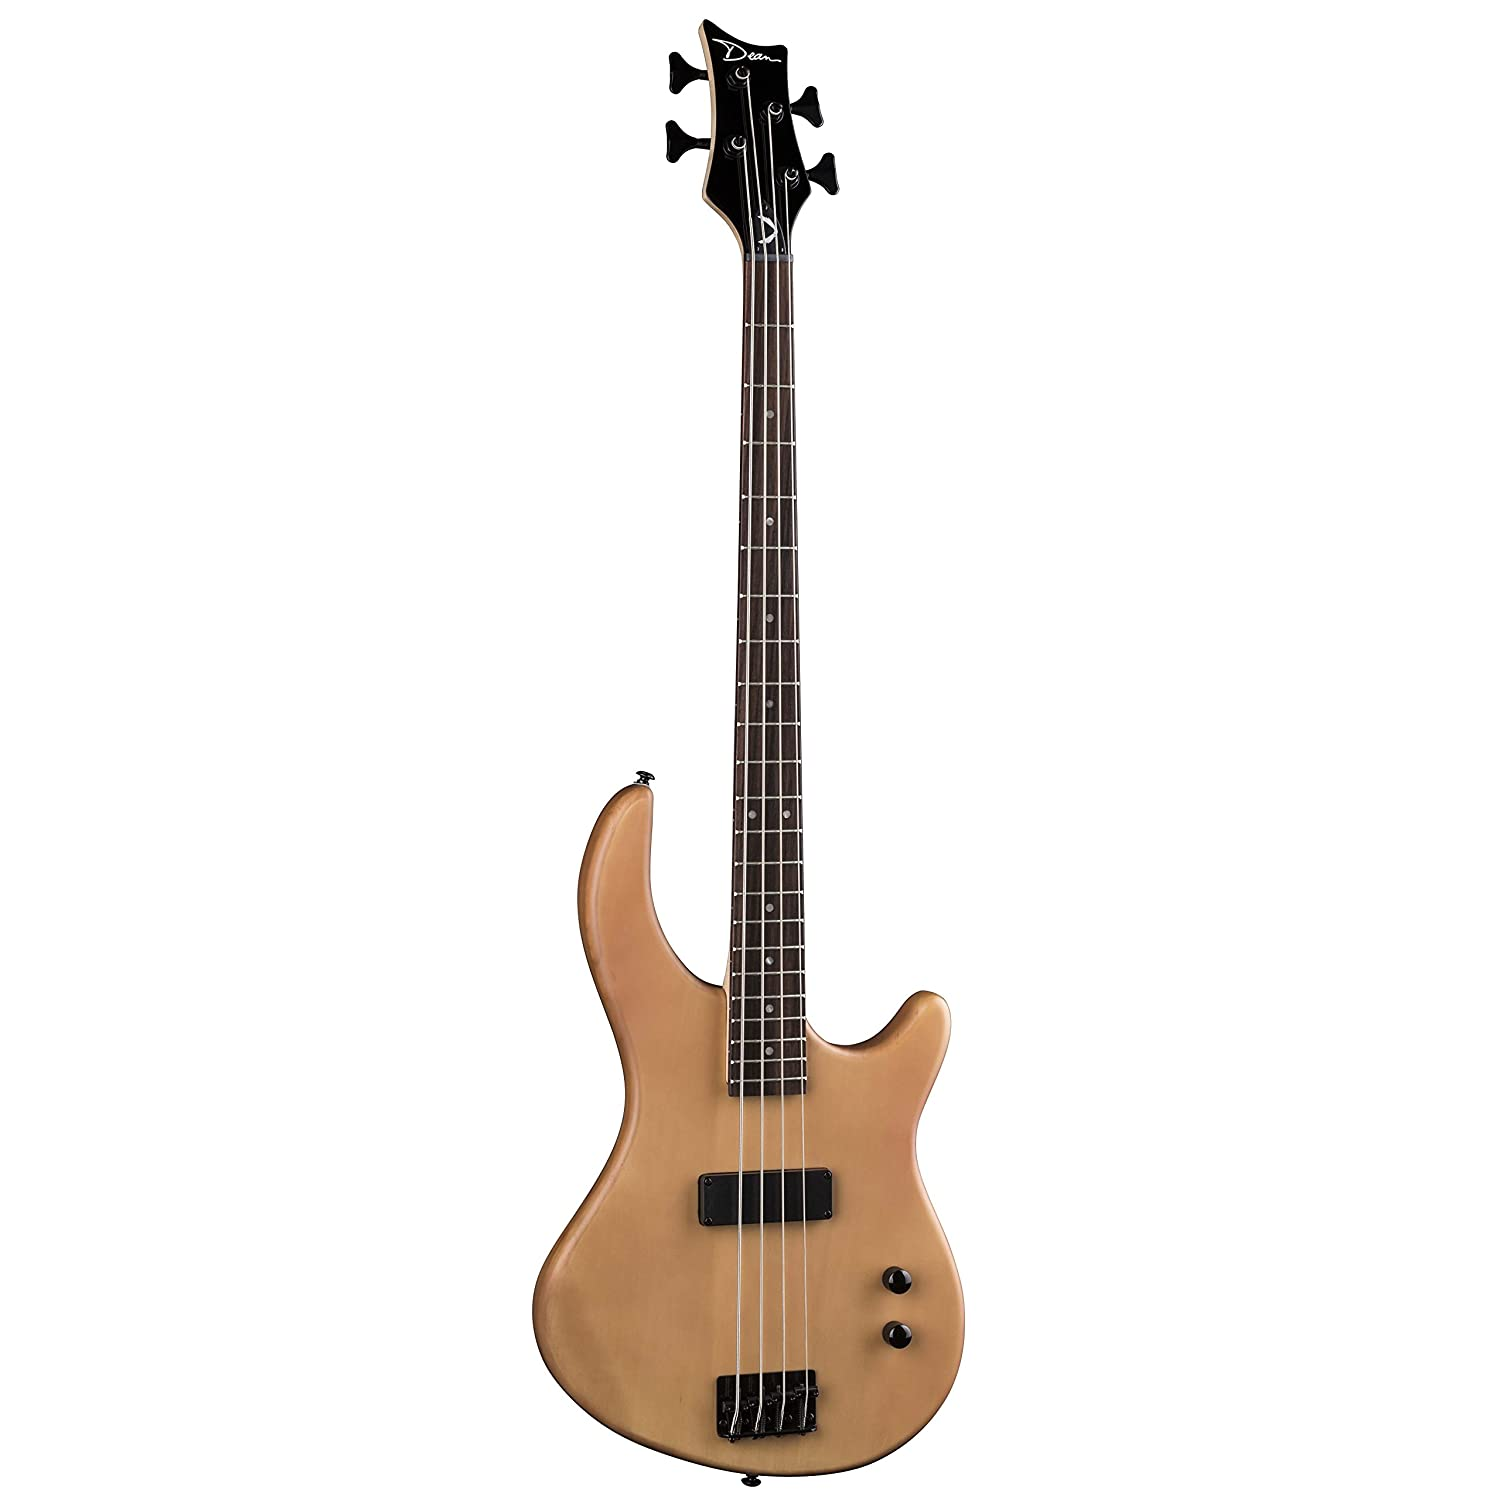 Amazon.com: Dean E09M Edge Mahogany Electric Bass Guitar - Natural: Musical  Instruments